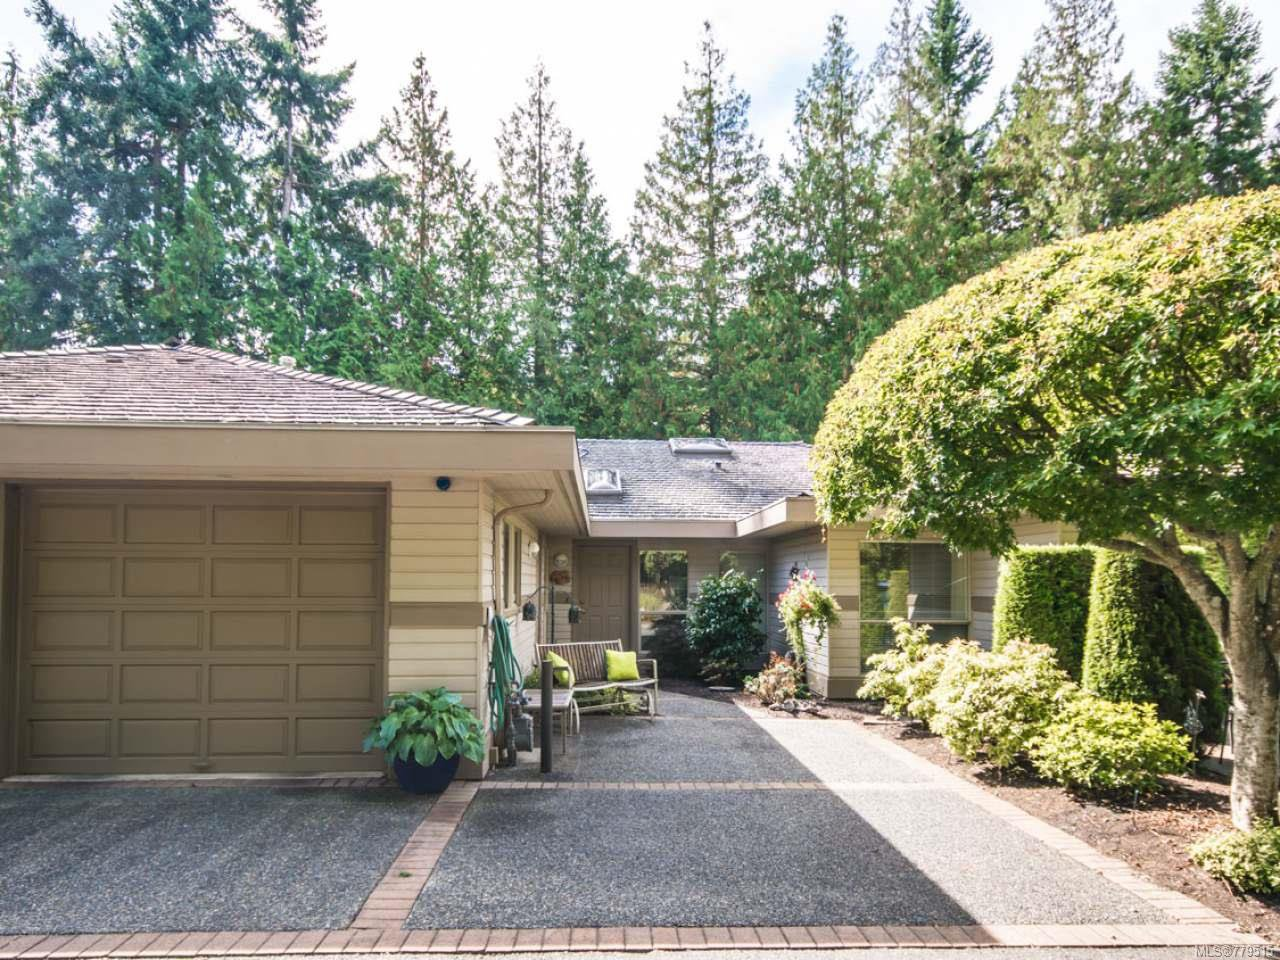 Main Photo: 1196 LEE ROAD in FRENCH CREEK: PQ French Creek Row/Townhouse for sale (Parksville/Qualicum)  : MLS®# 779515